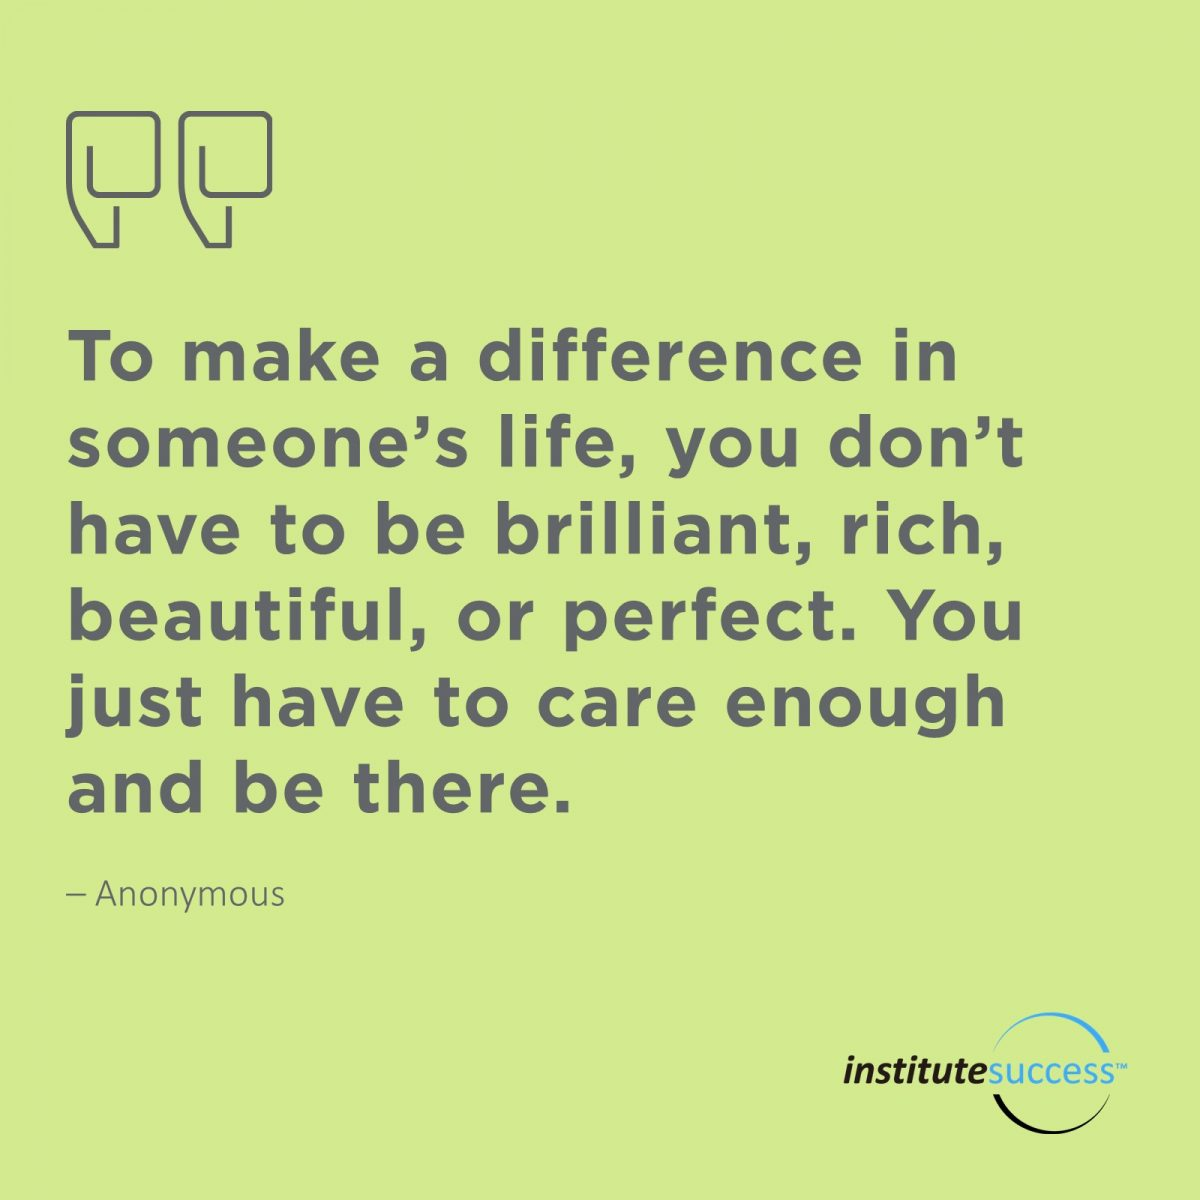 To make a difference in someone's life, you don't have to be brilliant, rich, beautiful, or perfect. You just have to care enough and be there. – Anonymous